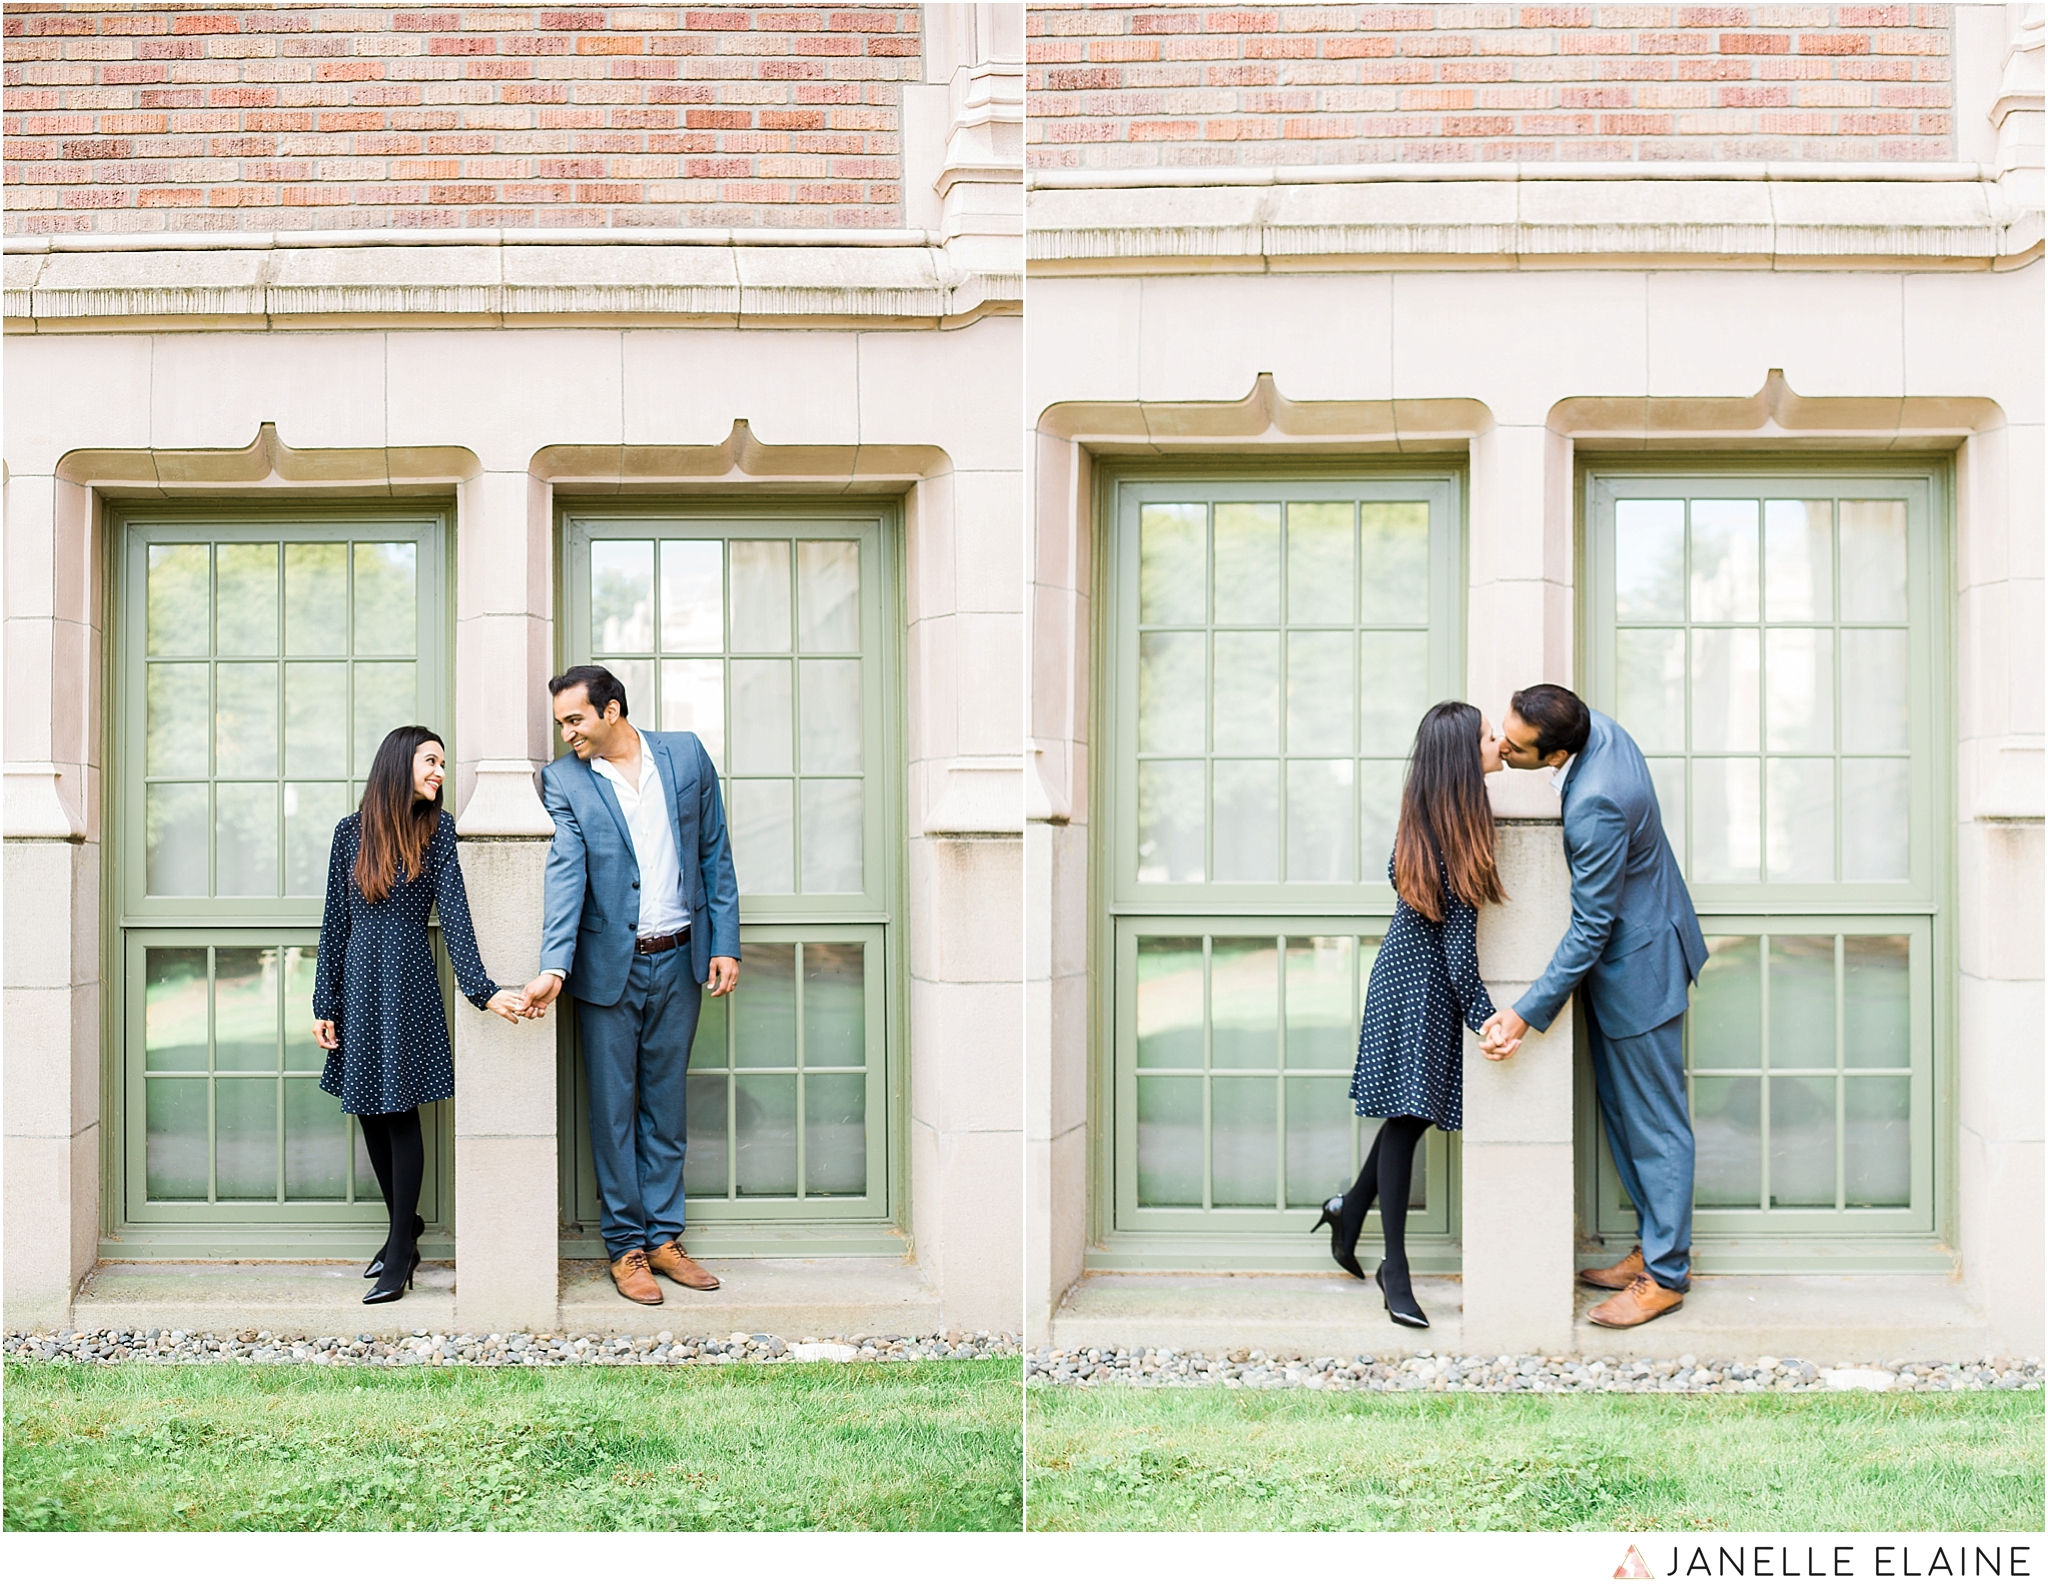 janelle elaine photography-zain and umema-seattle-uw-red square-engagement-photographer-174.jpg